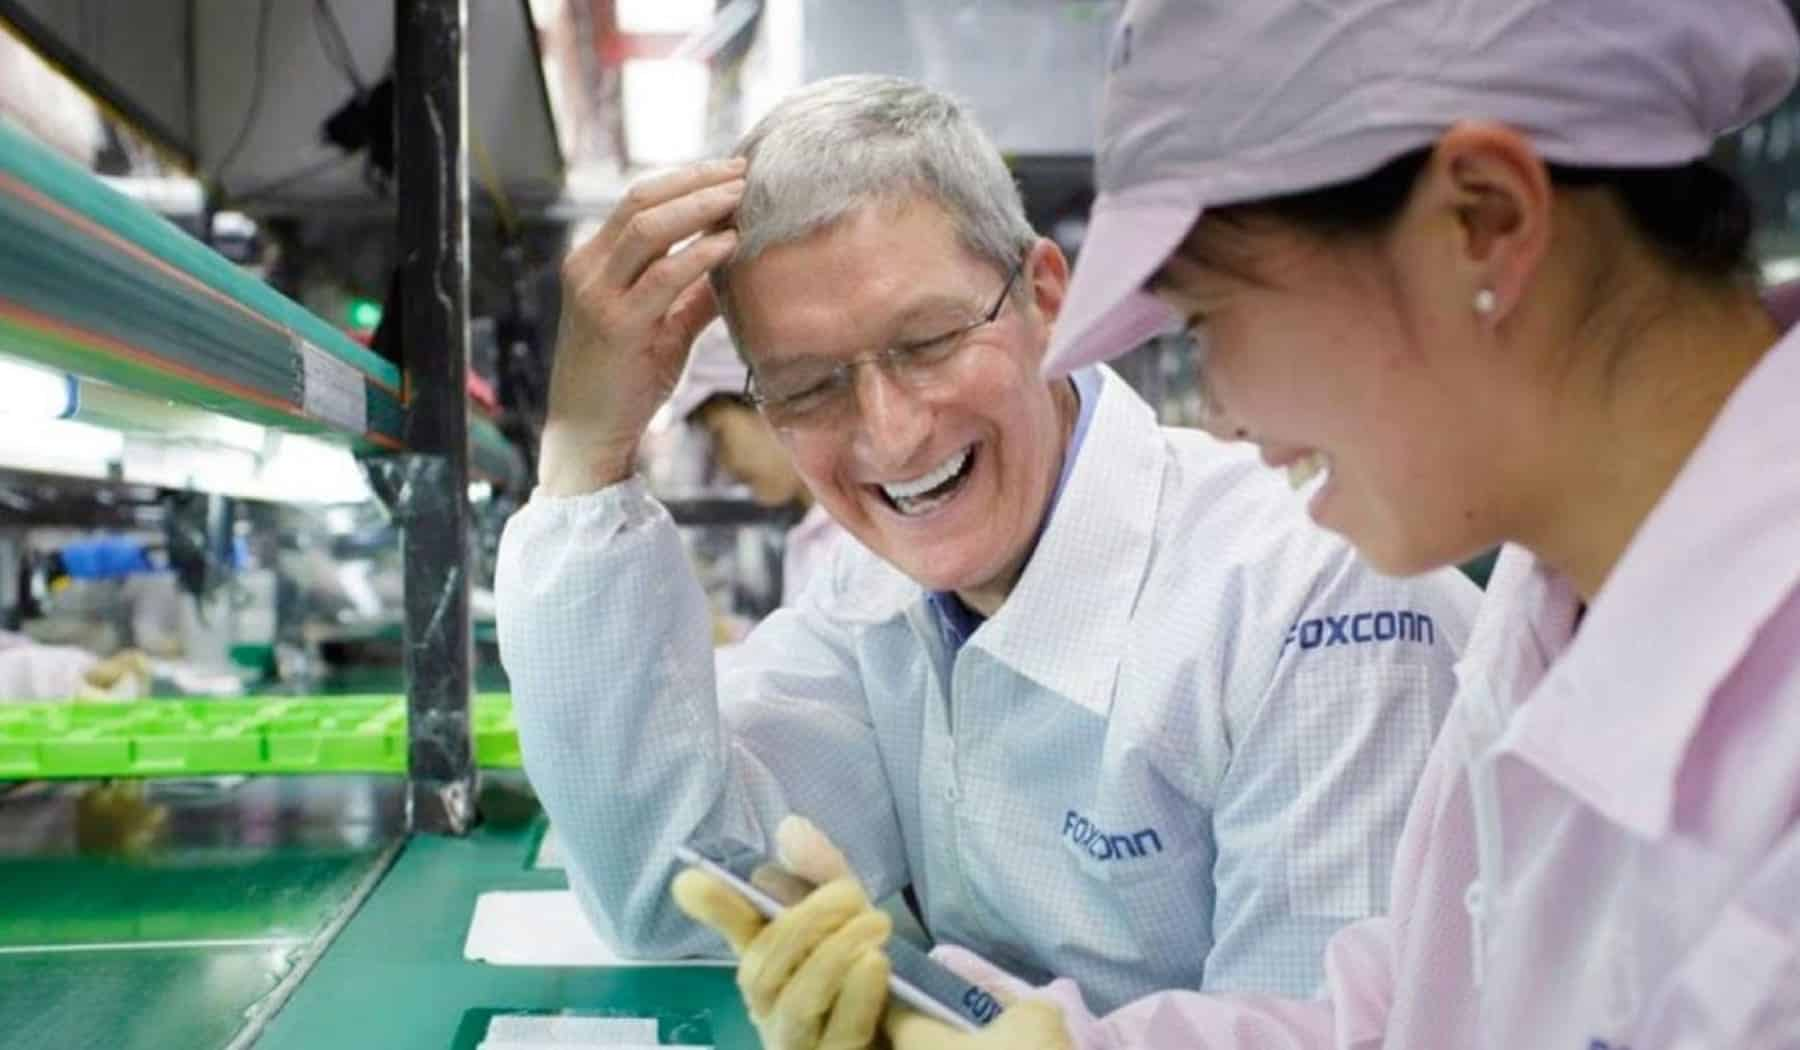 US lawmaker questions Apple CEO in regards to forced Uyghur labour report